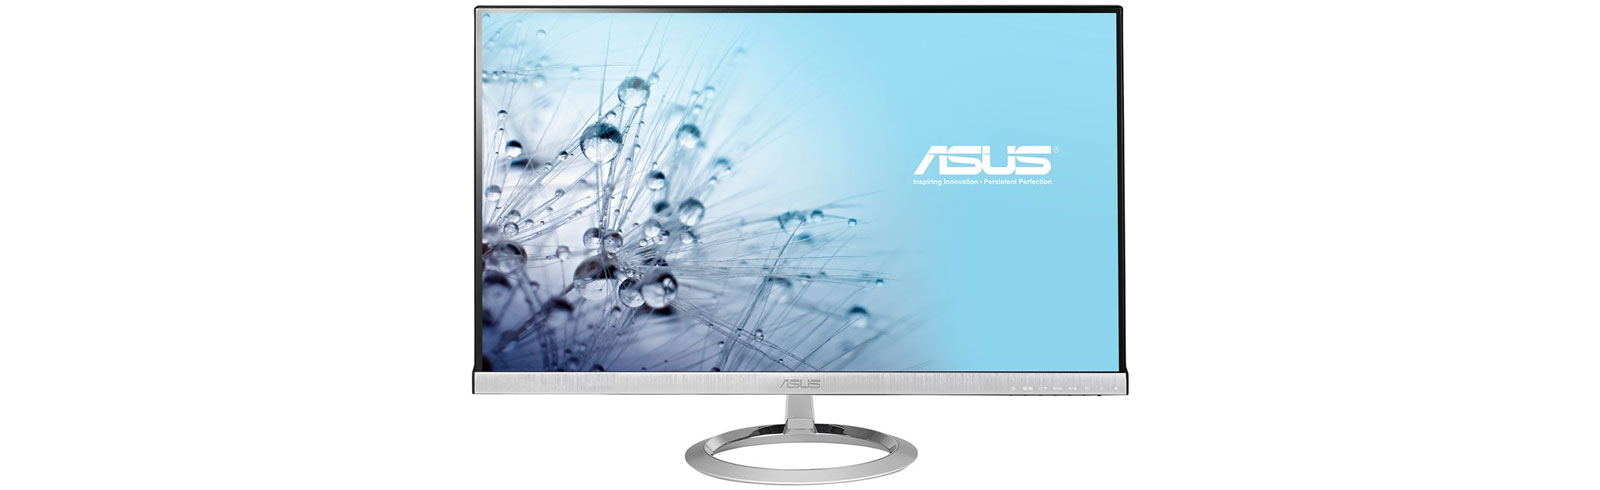 "Asus unveils two Designo MX desktop monitors with 25"" and 27"" diagonal size, respectively"